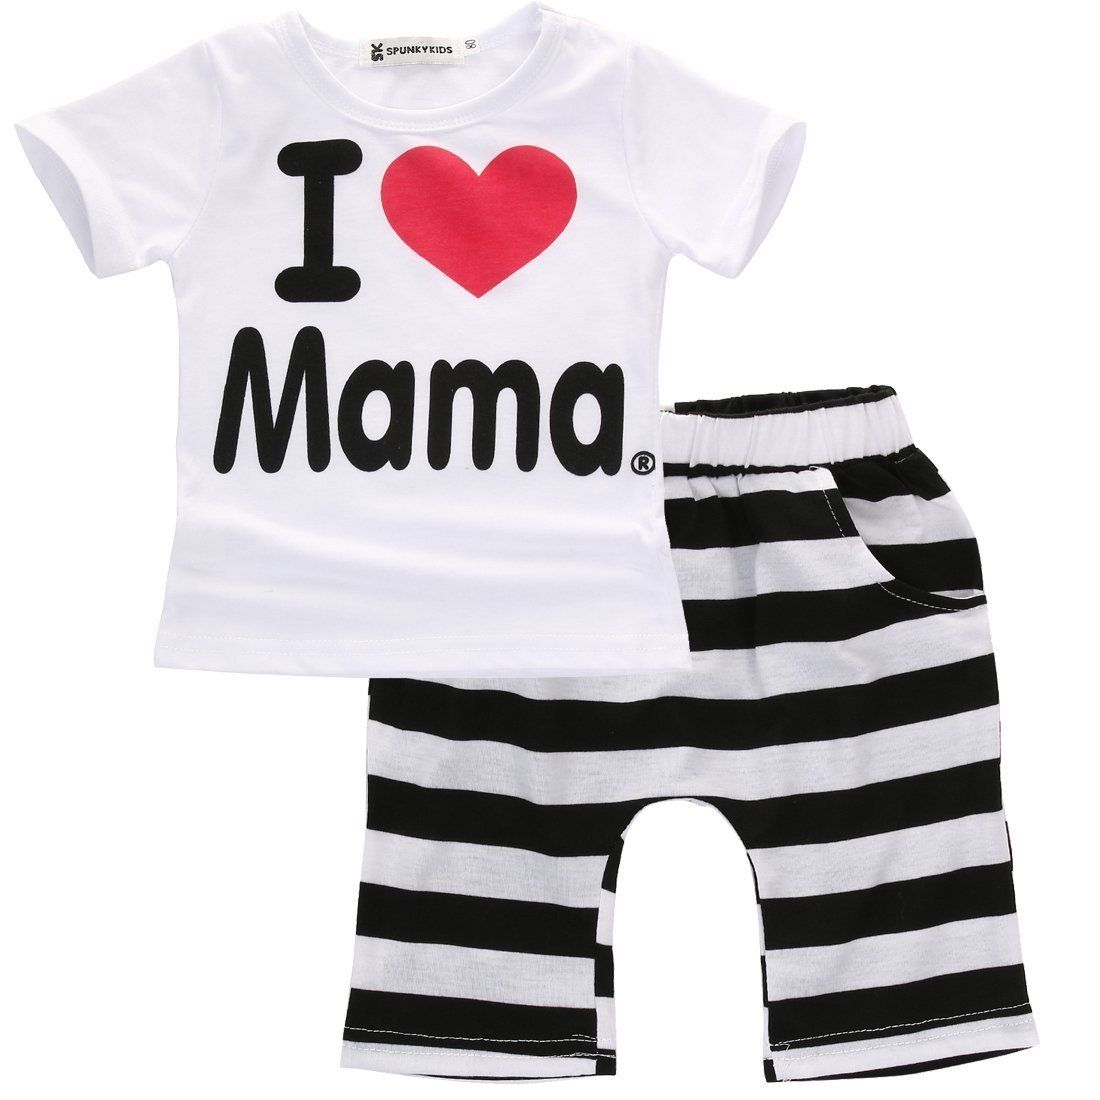 dbb1c062f22b0 US $2.42 19% OFF|2PCS Toddler Infant Newborn Twins Baby Boy Girls Casual T  shirt Strip Pants Outfits Pajamas Suit-in Clothing Sets from Mother & Kids  ...